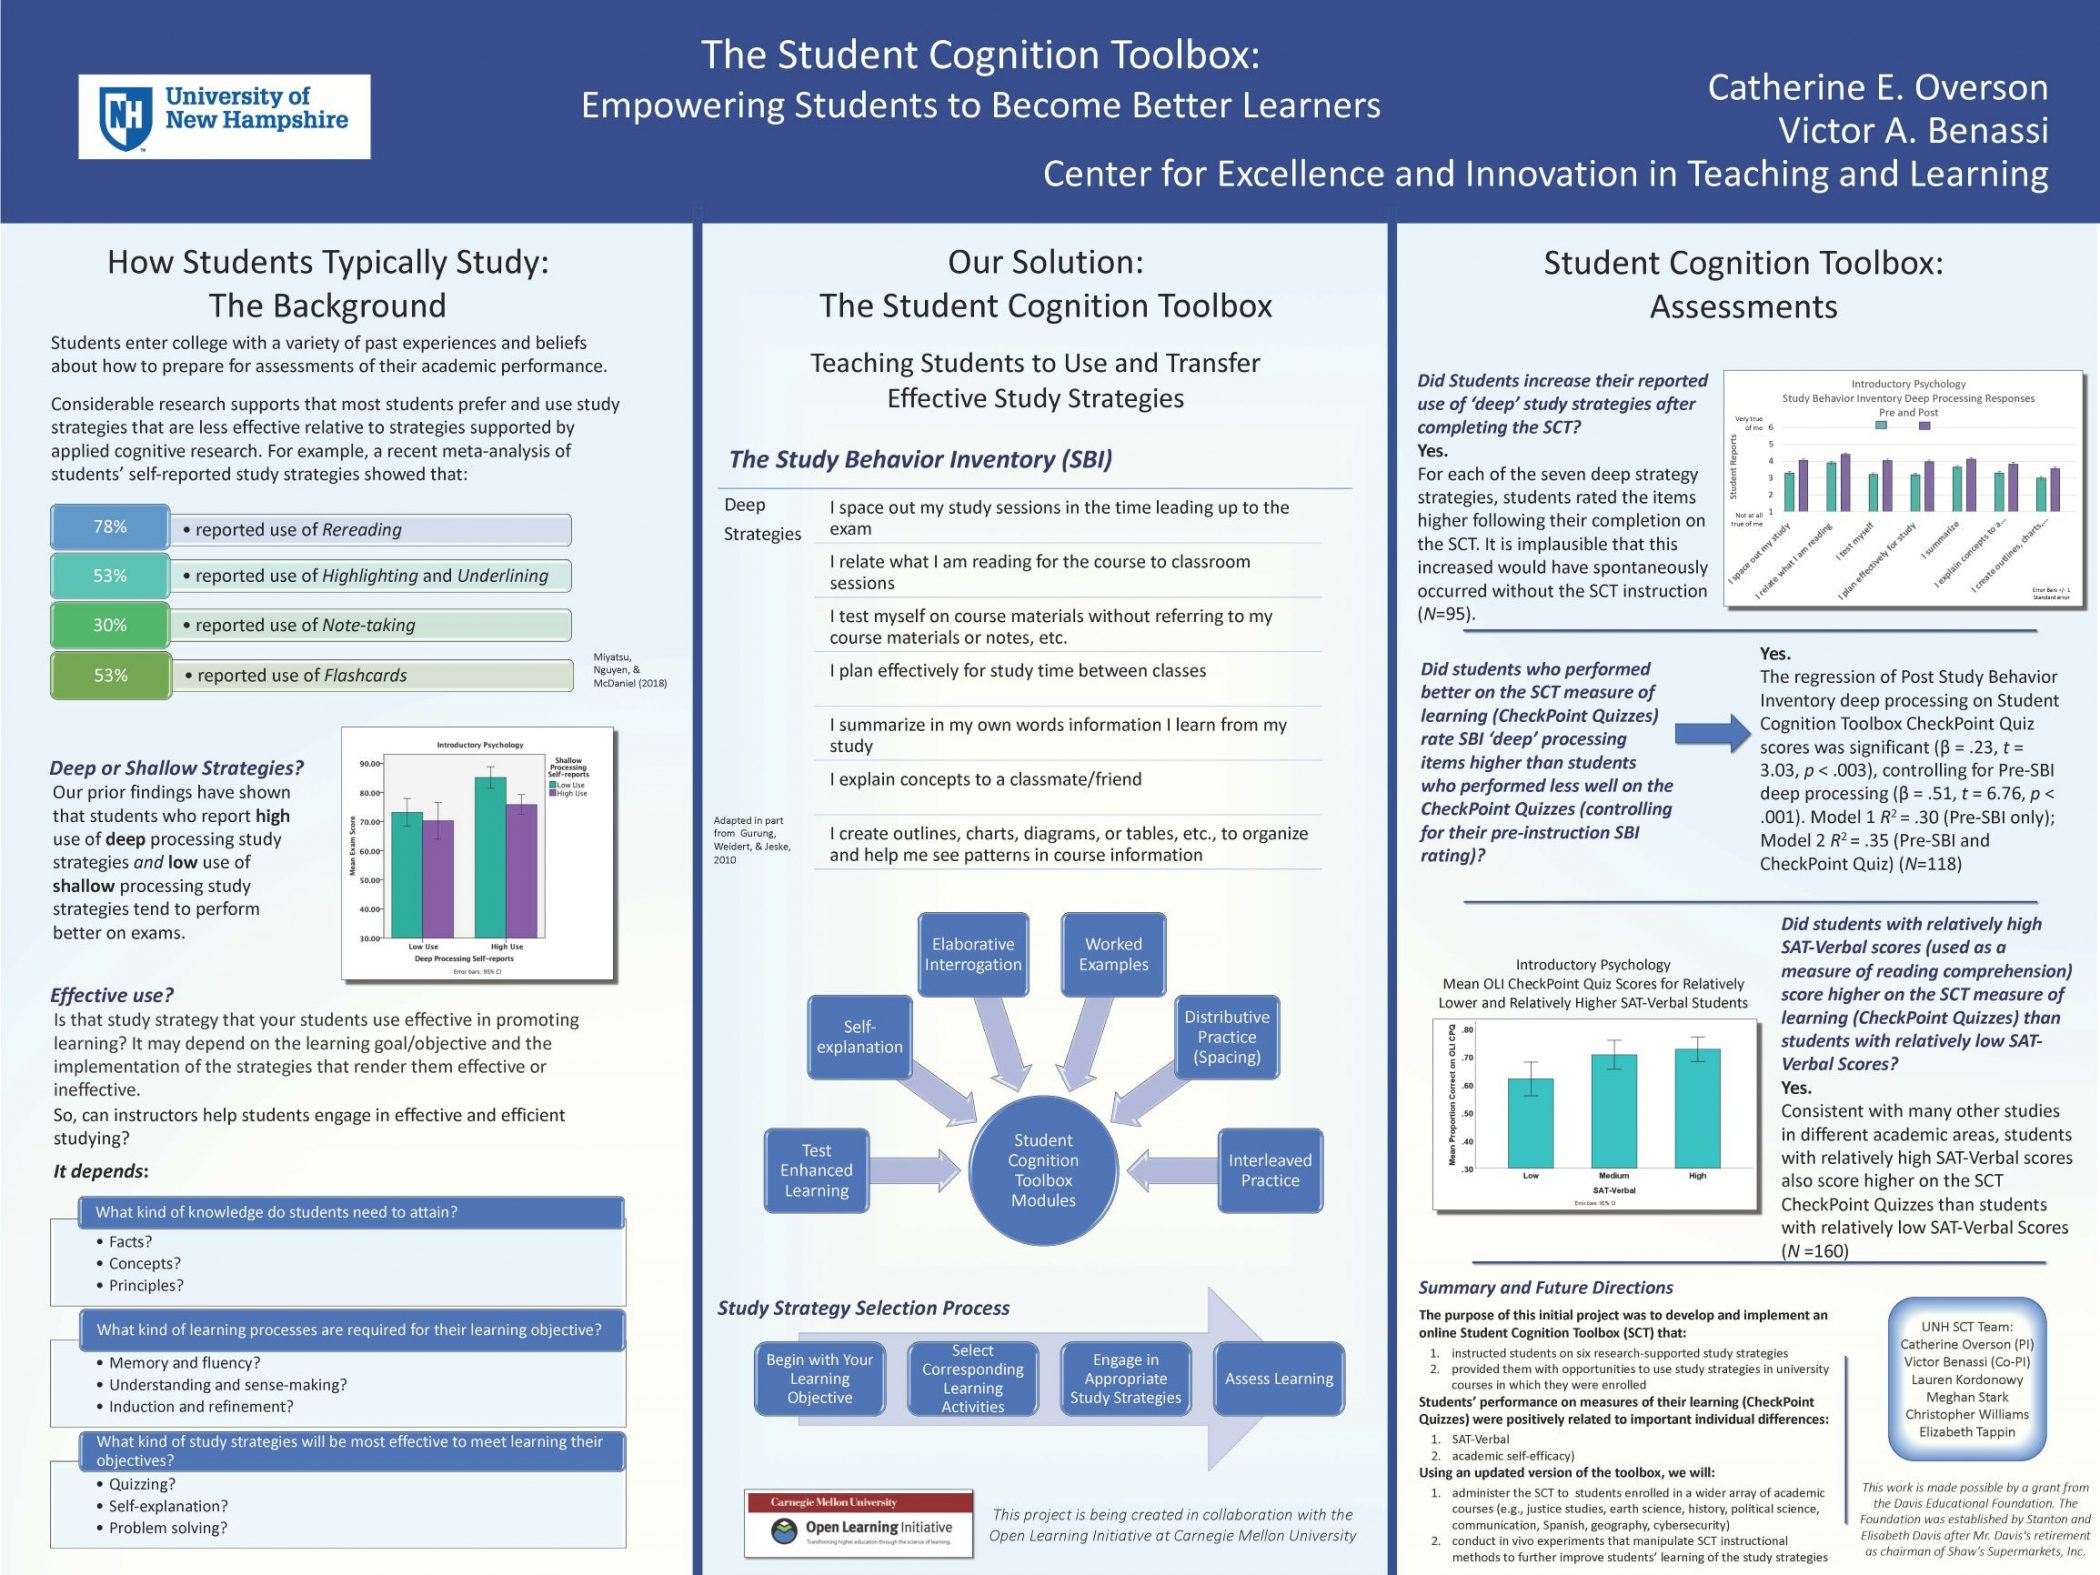 Poster explaining purpose, methods, and results of the Student Cognition Toolbox (with link to printable PDF version)